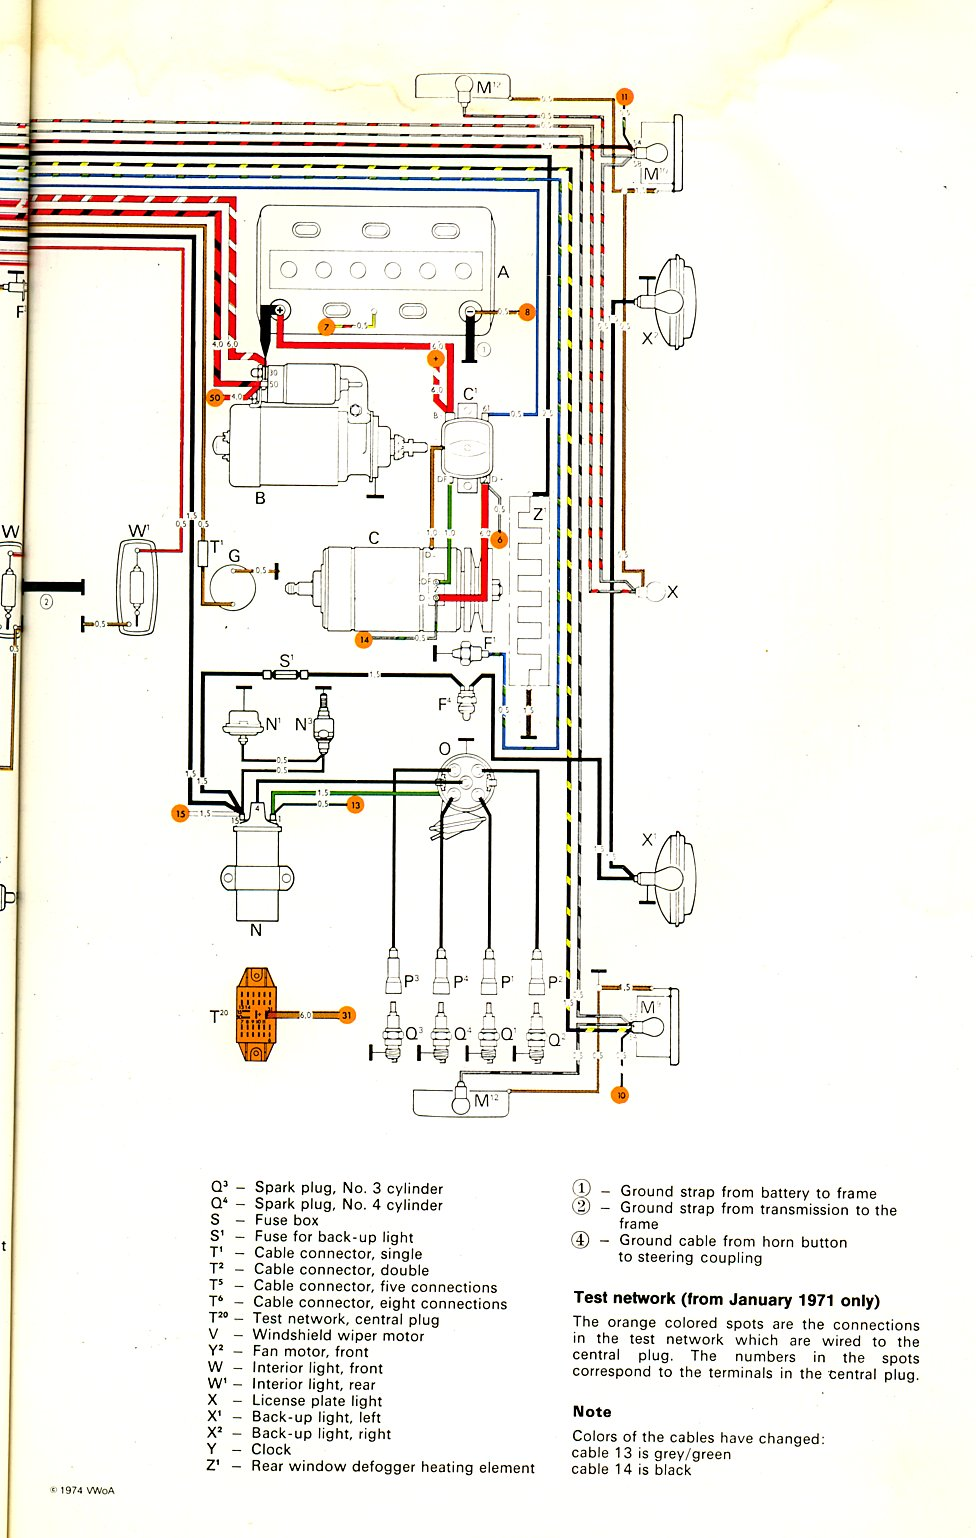 Type 2 Wiring Diagrams Diagram Further Wall Heater Get Free Image About